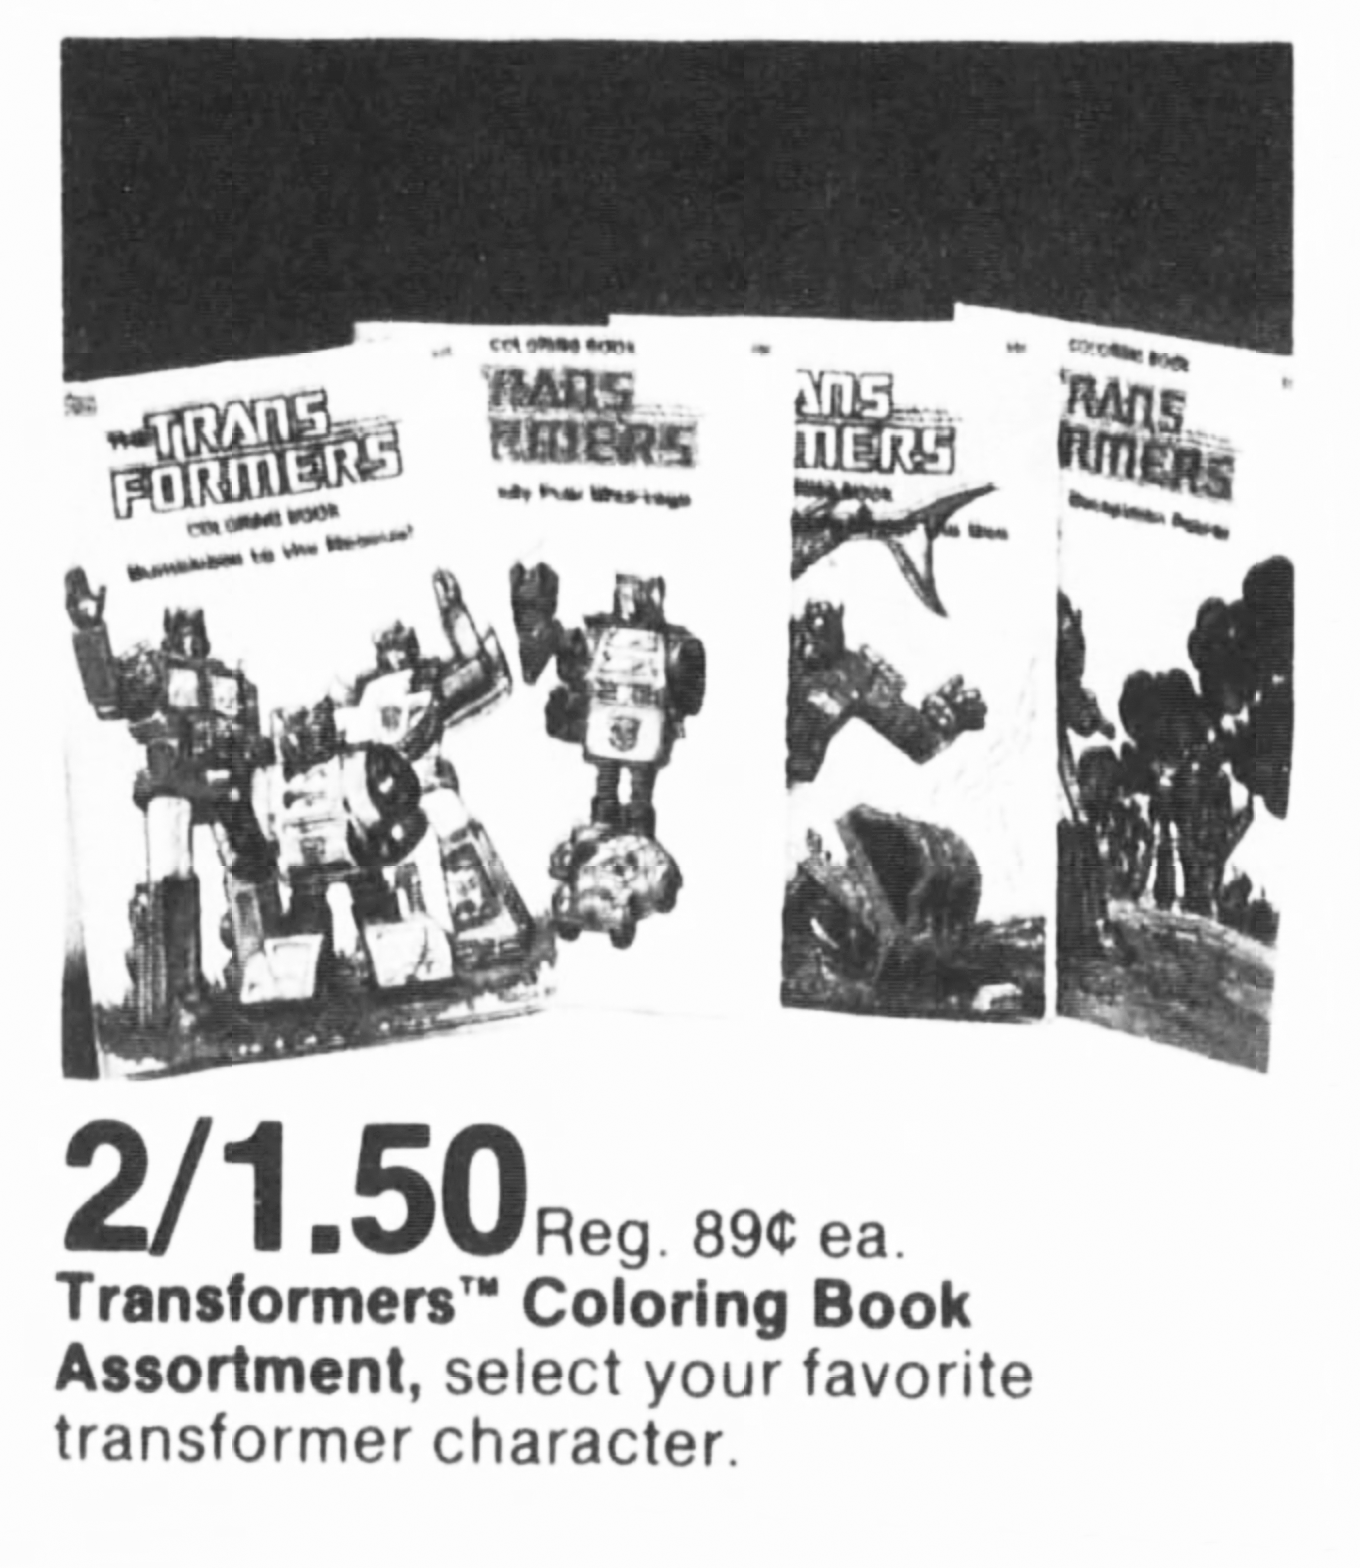 Transformers Coloring Books on Sale in 1985